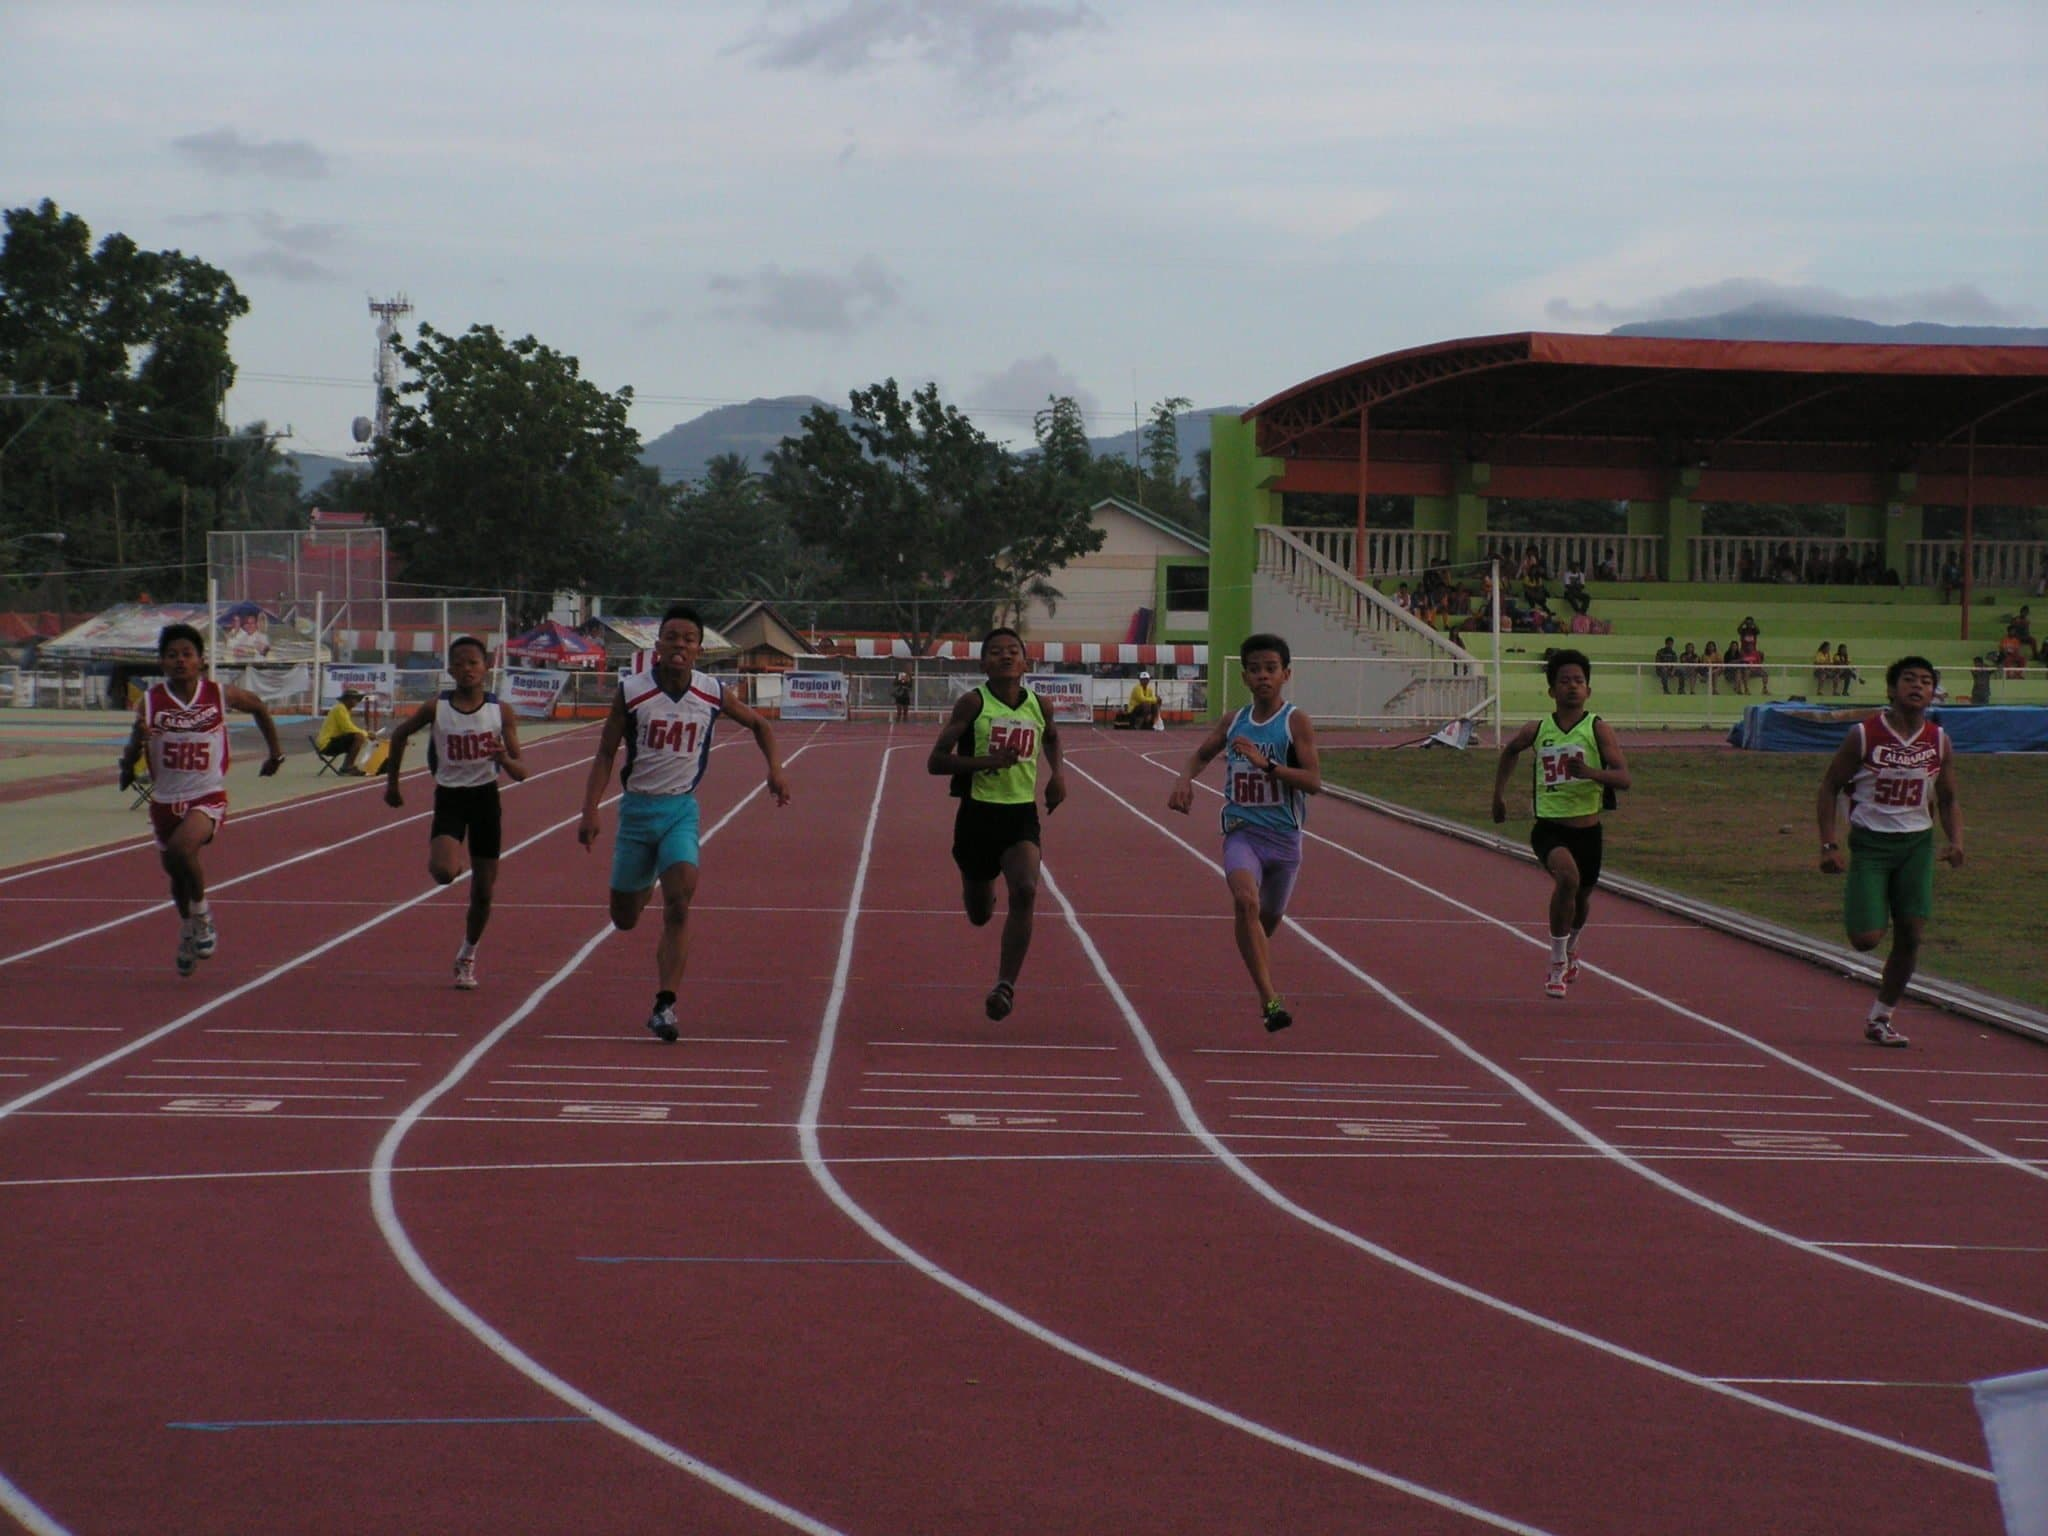 Requillas (641) winning the 200m Elementary Boys